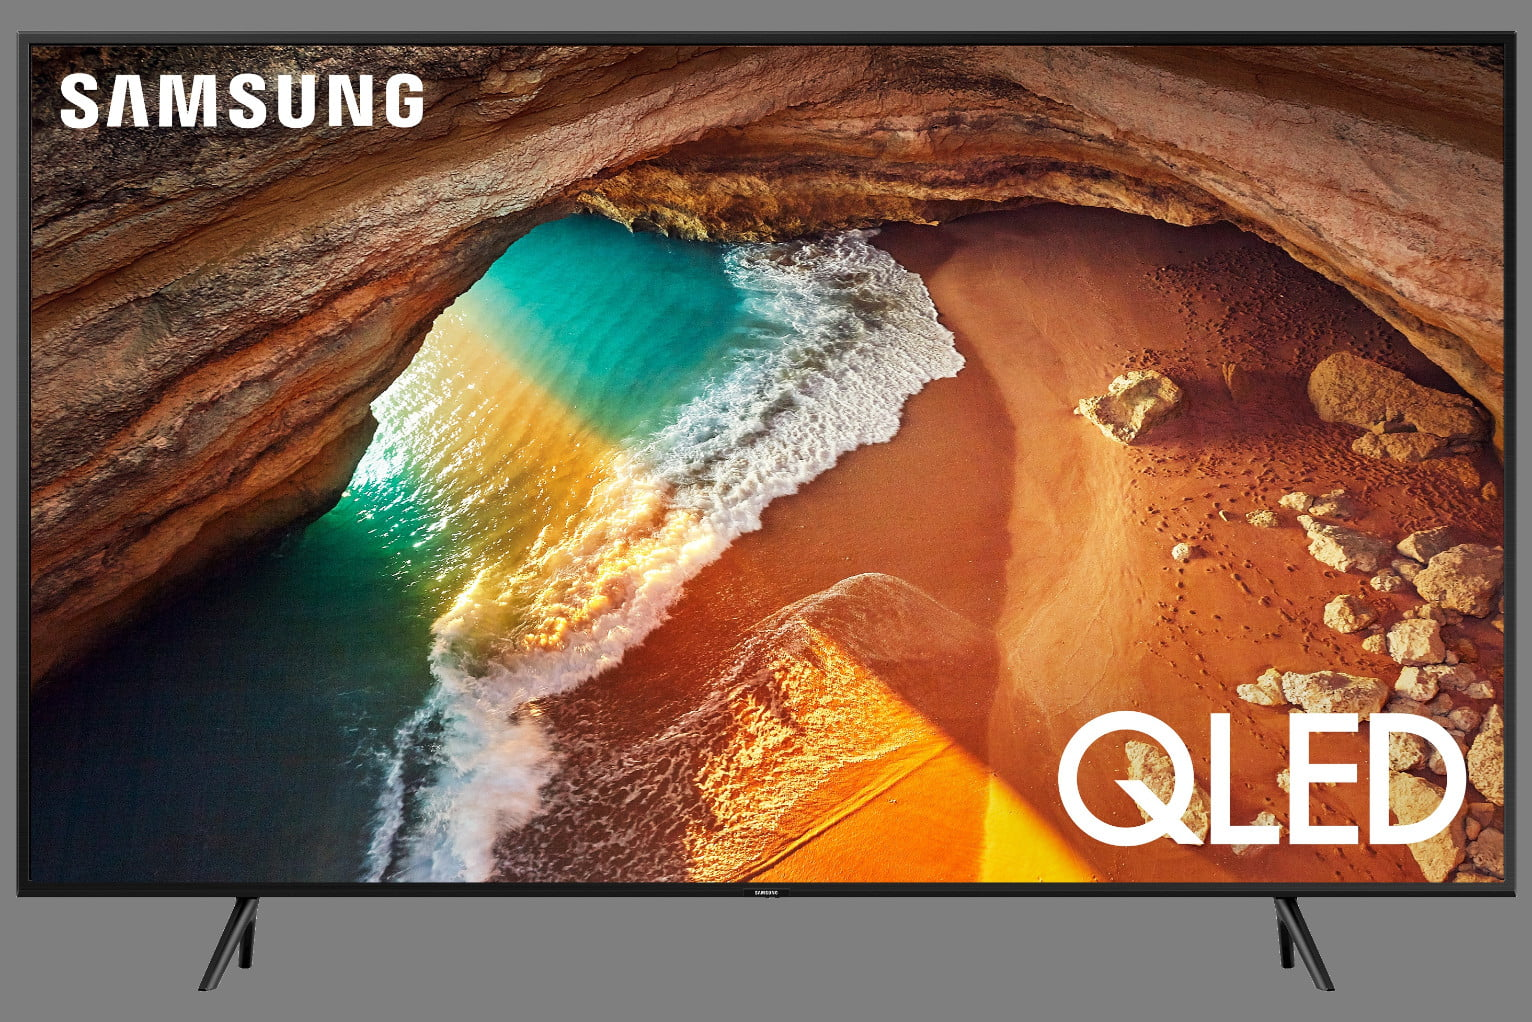 Walmart drops prices on all sizes of Samsung 4K UHD and QLED HDR smart TVs